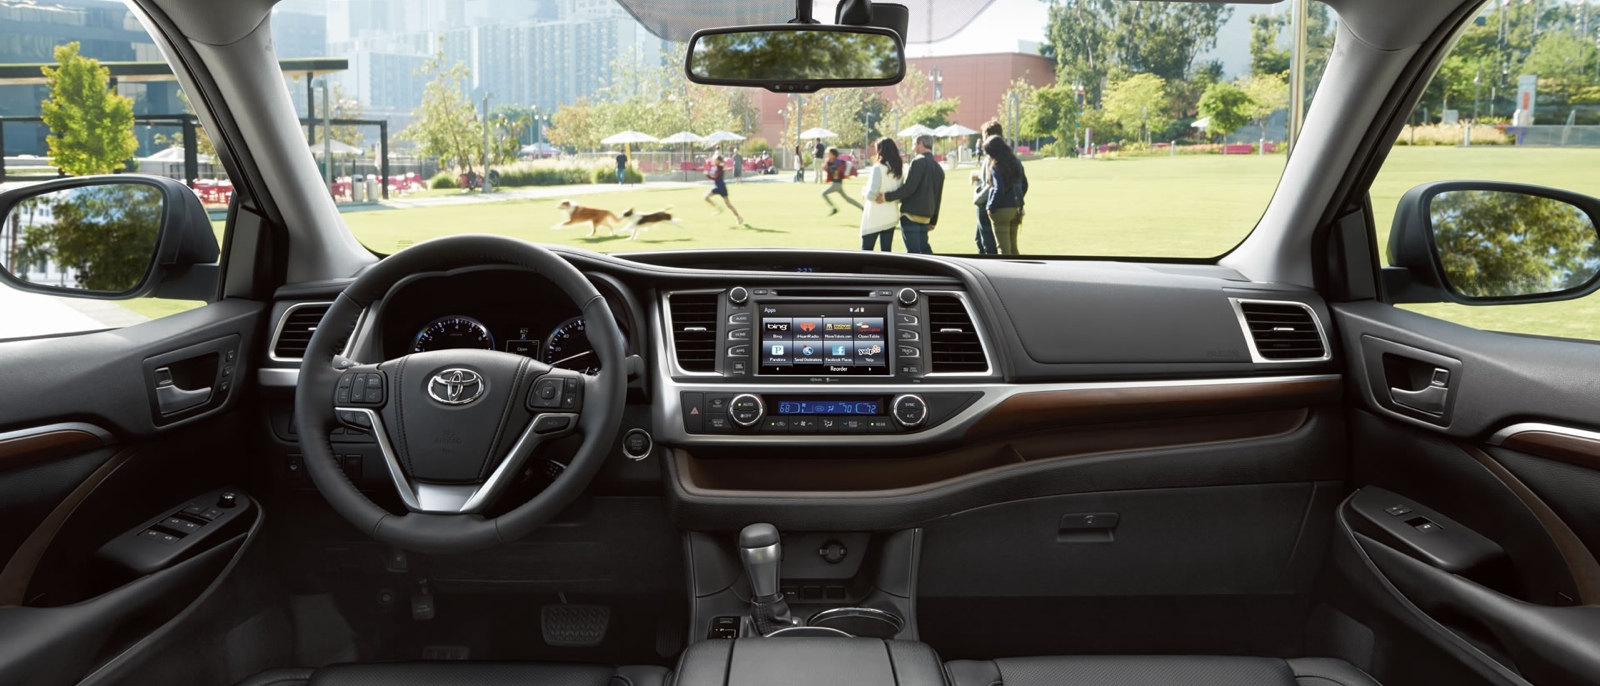 2015 Toyota Highlander Interior